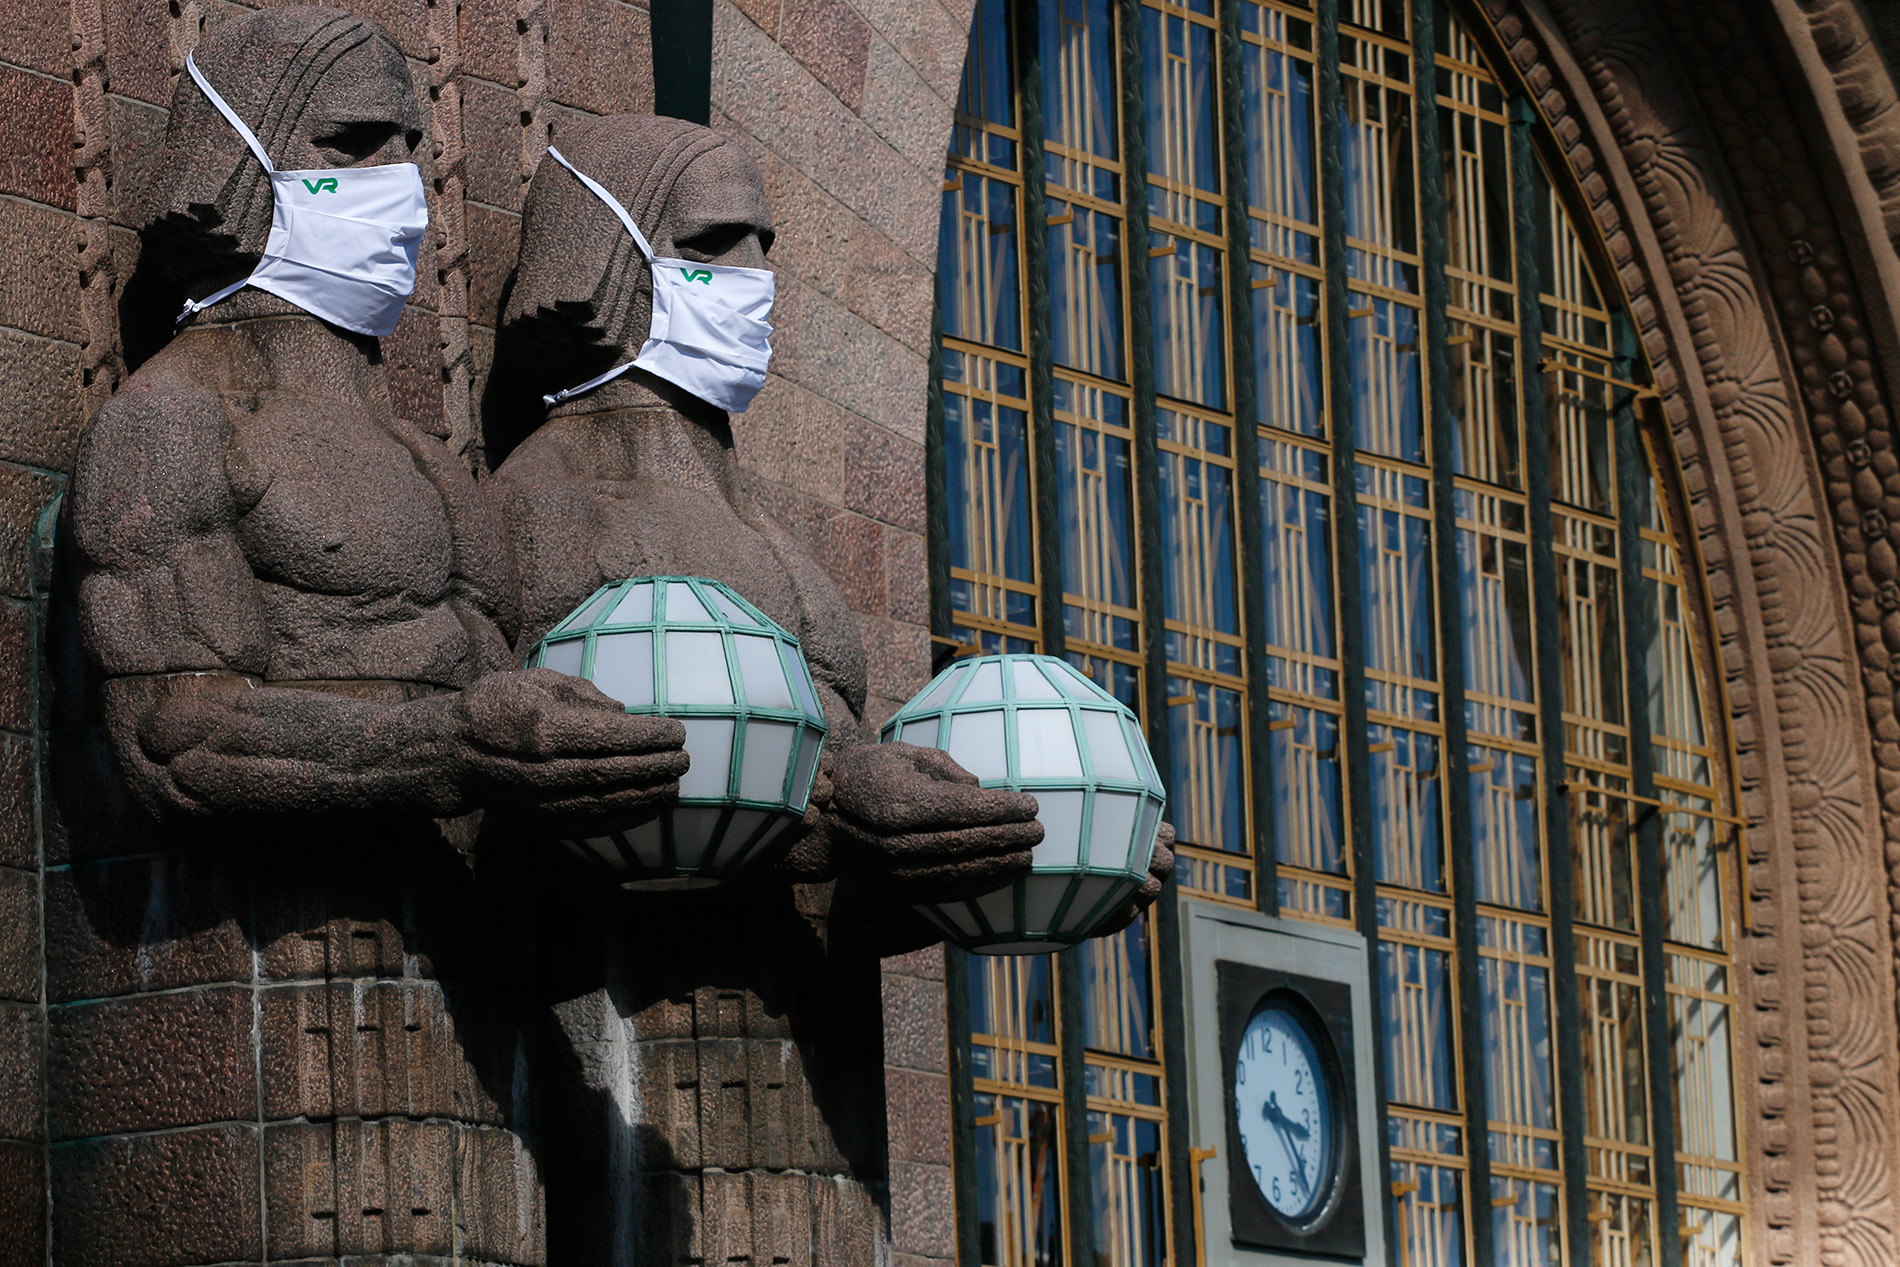 People in Helsinki center began increasingly wearing masks in August, 2020. The iconic statues of the Helsinki Railway Station were clad in face coverings, too. Photograph: Tony Öhberg/Finland Today